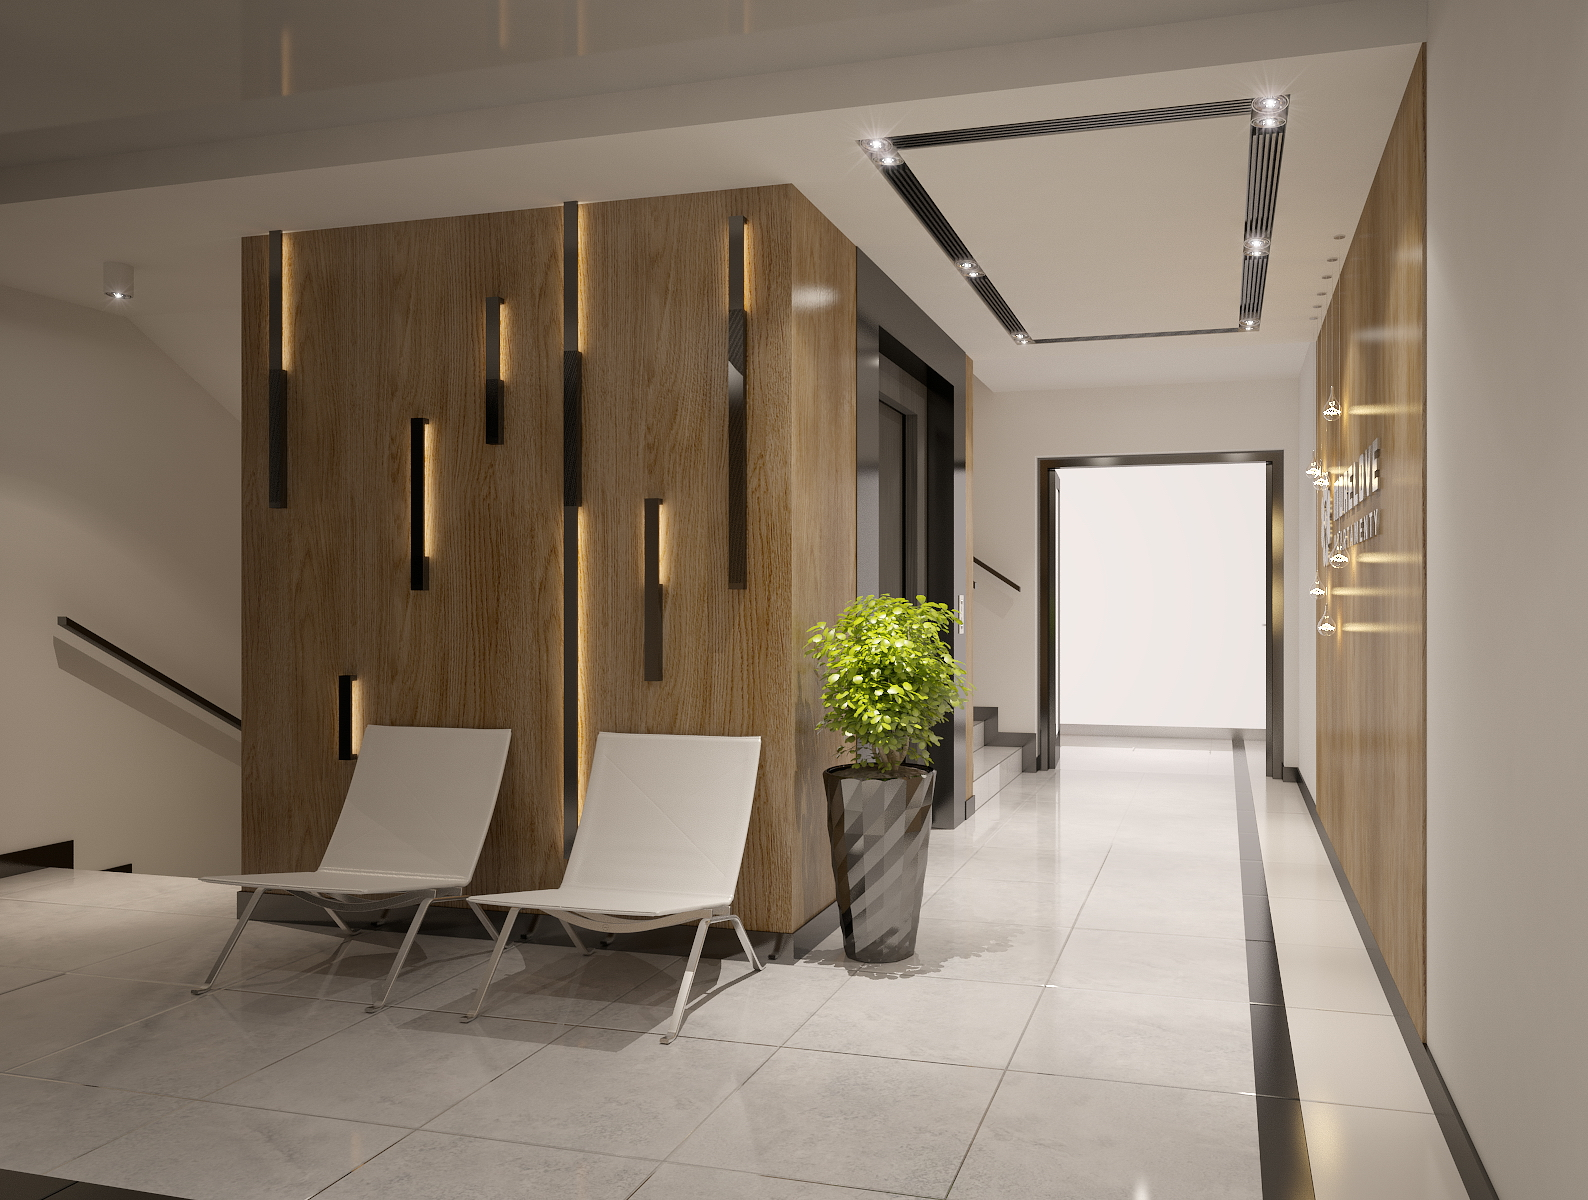 Foyer Interior Design : Apartments building entrance hall area foyer lobby with